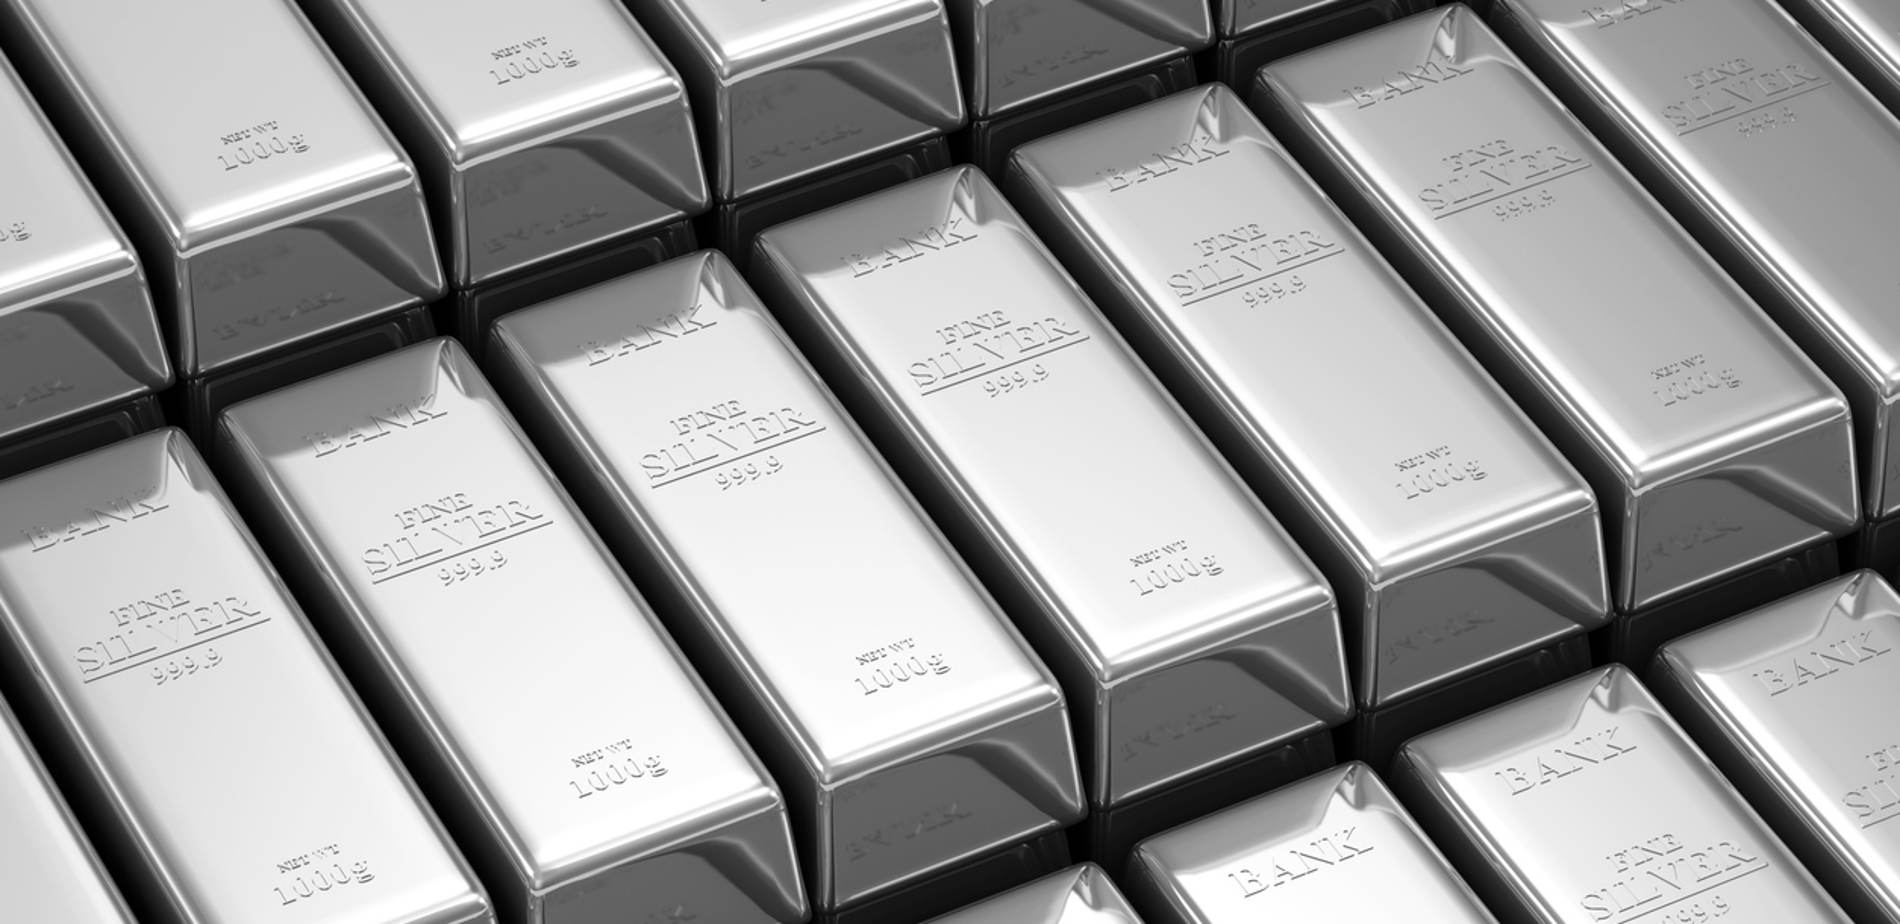 Silver Prices in 2017: This Chart Shows Silver Prices ...